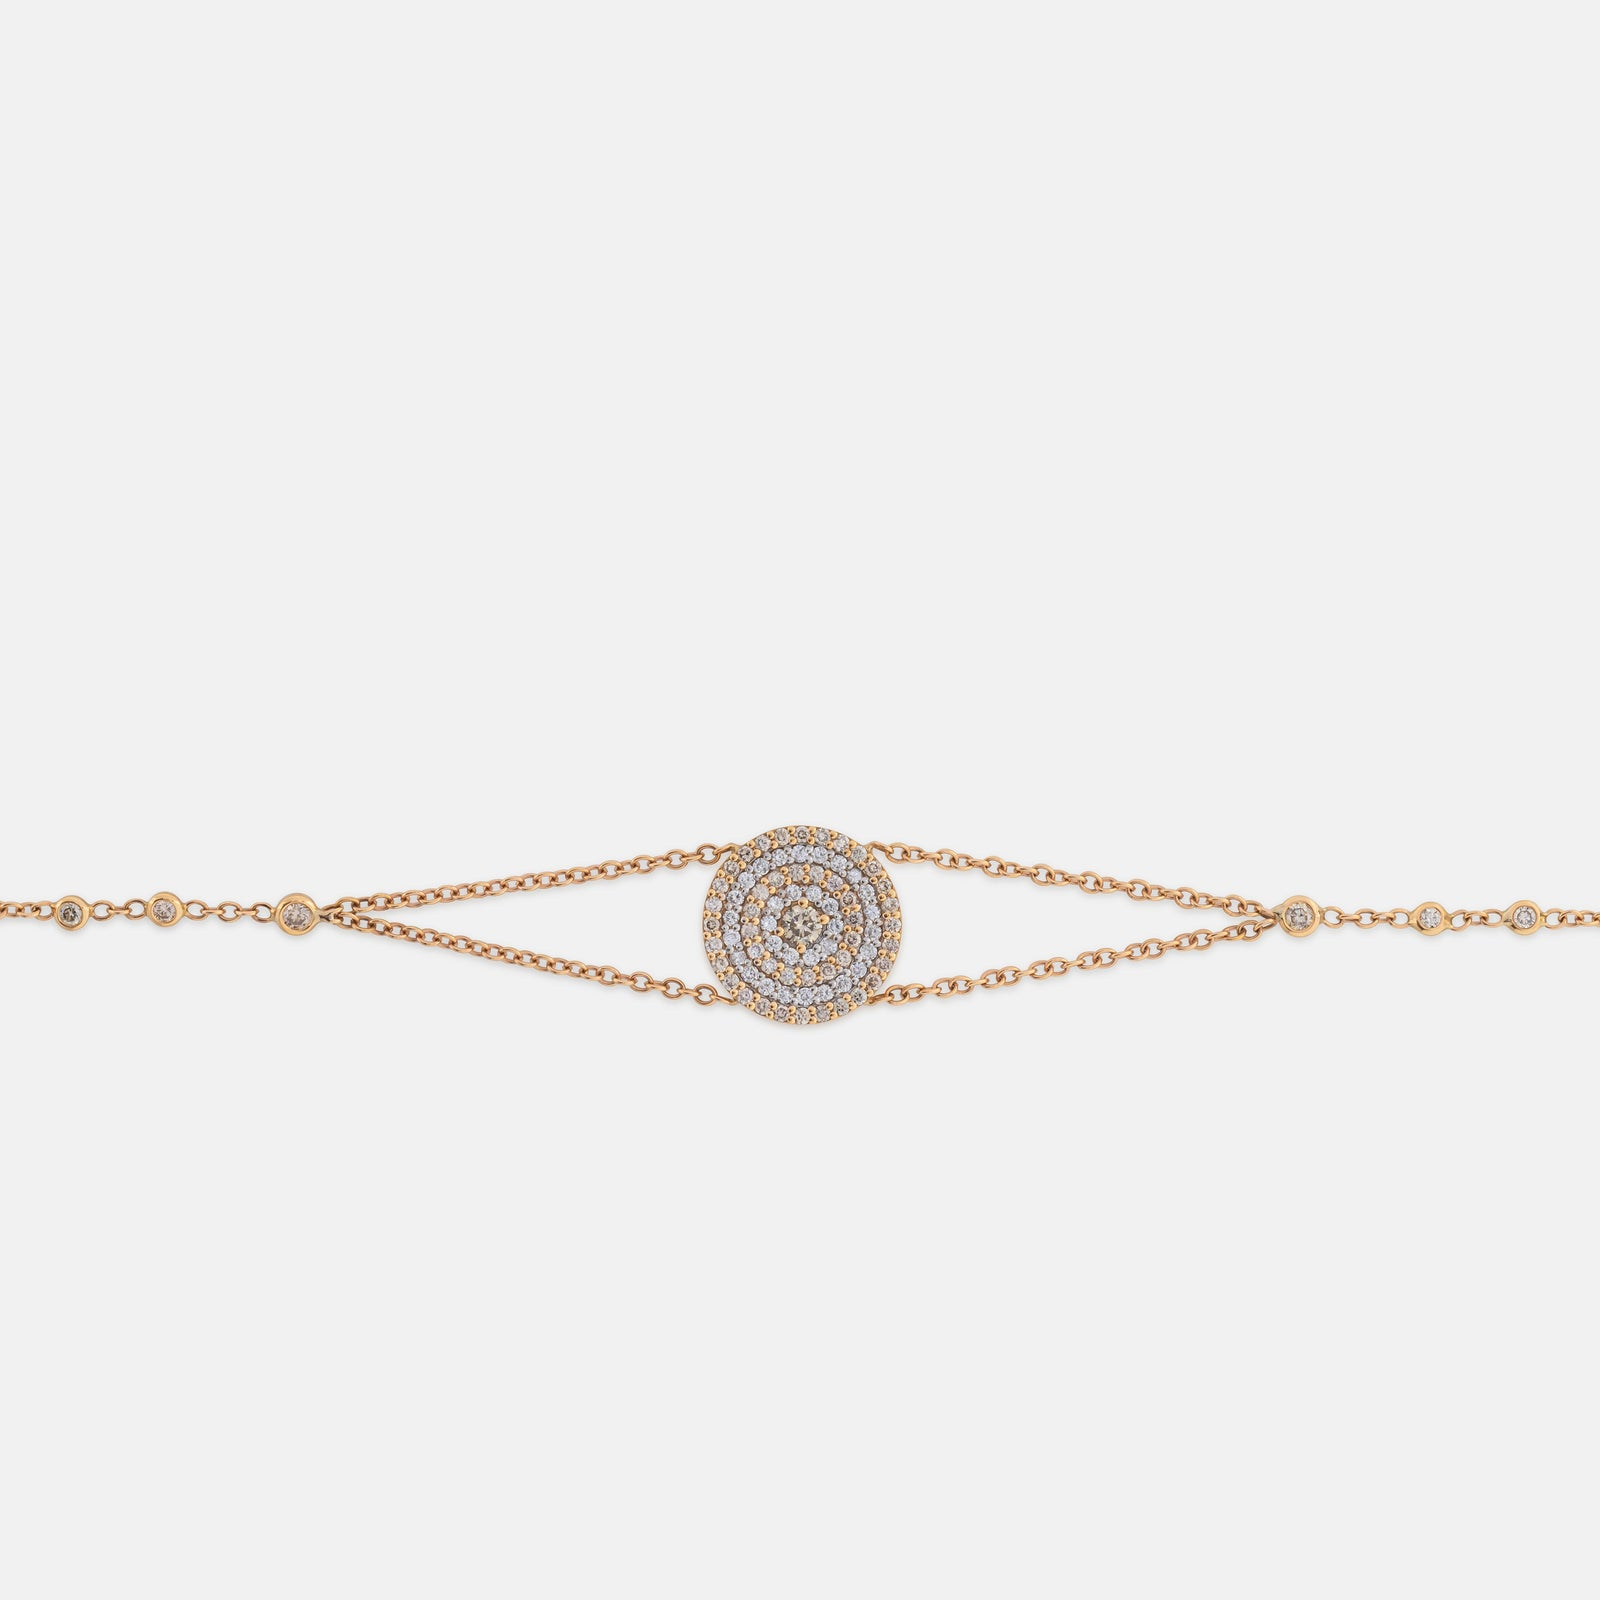 Small Pave Circle Chain Bracelet,<br> 18k White Gold & Rose Gold